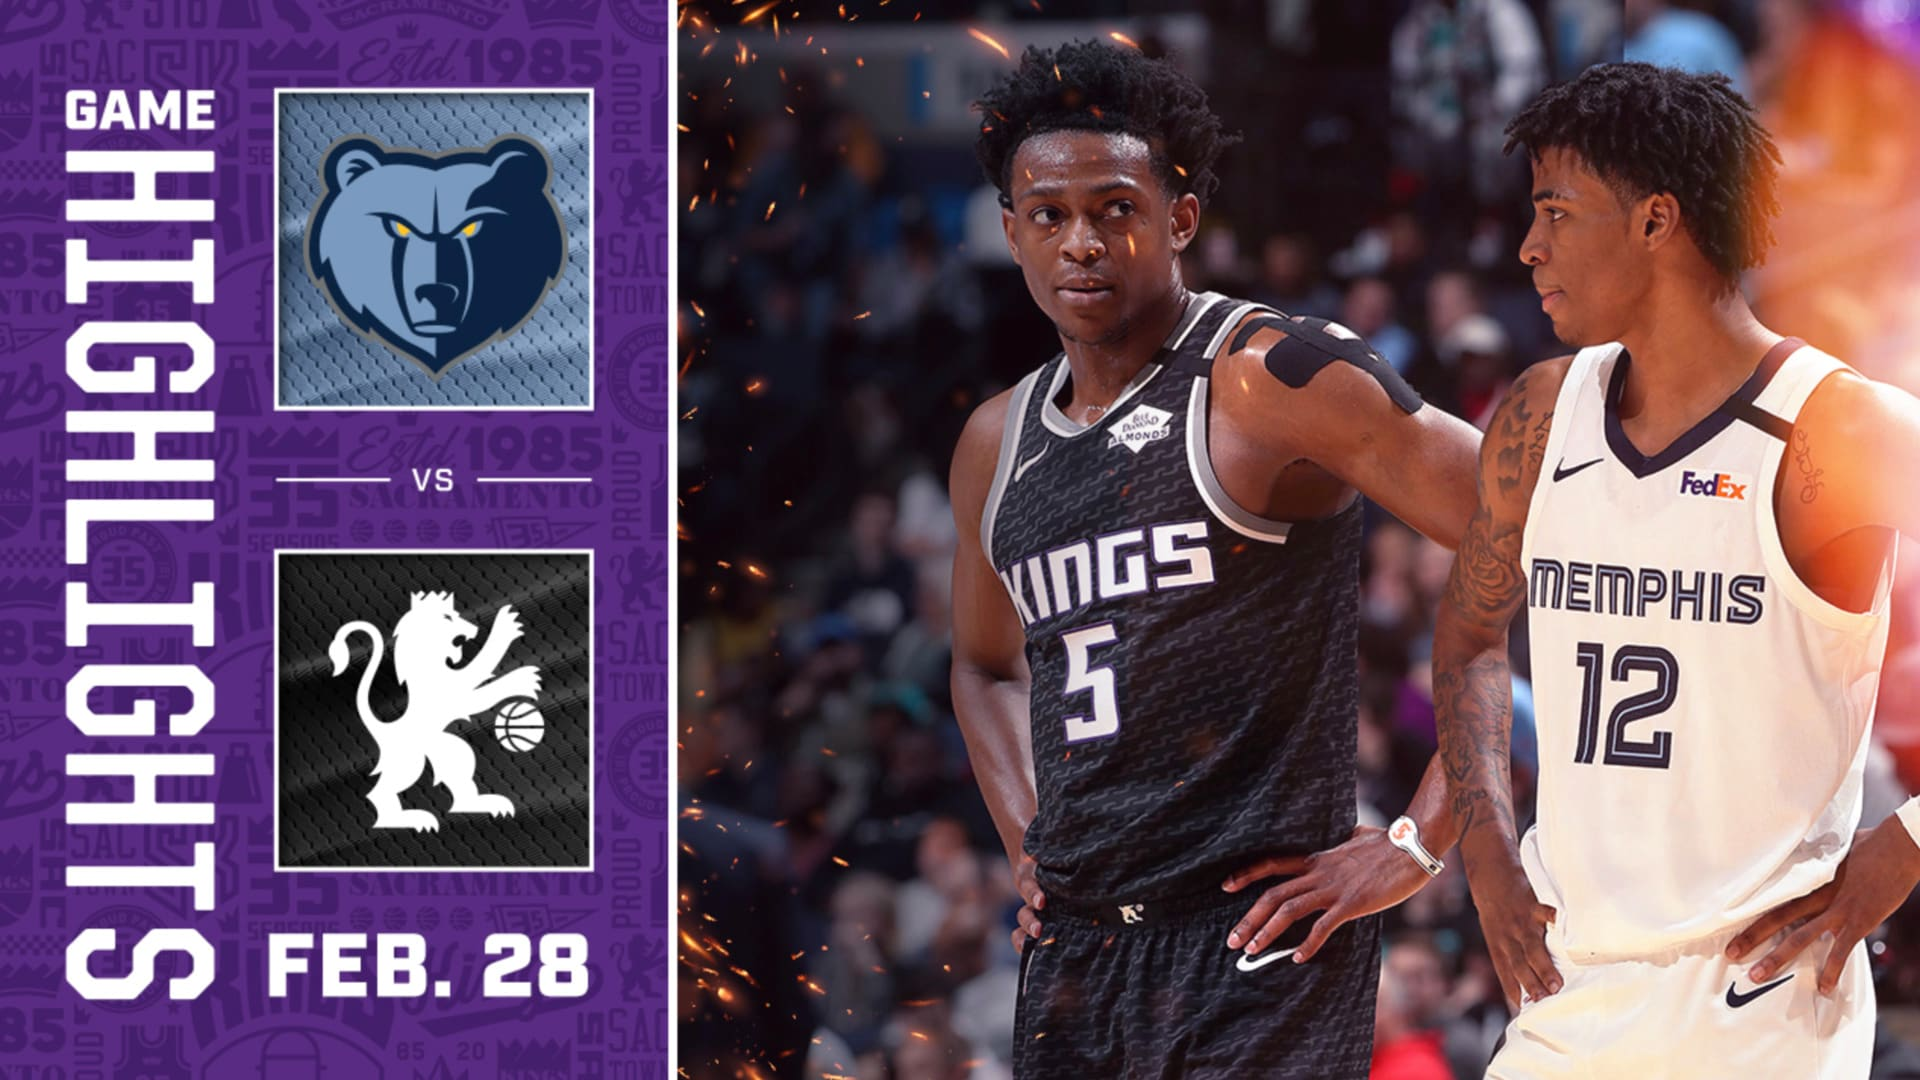 Kings Complete the Road Trip with a WIN | Kings vs Grizzlies